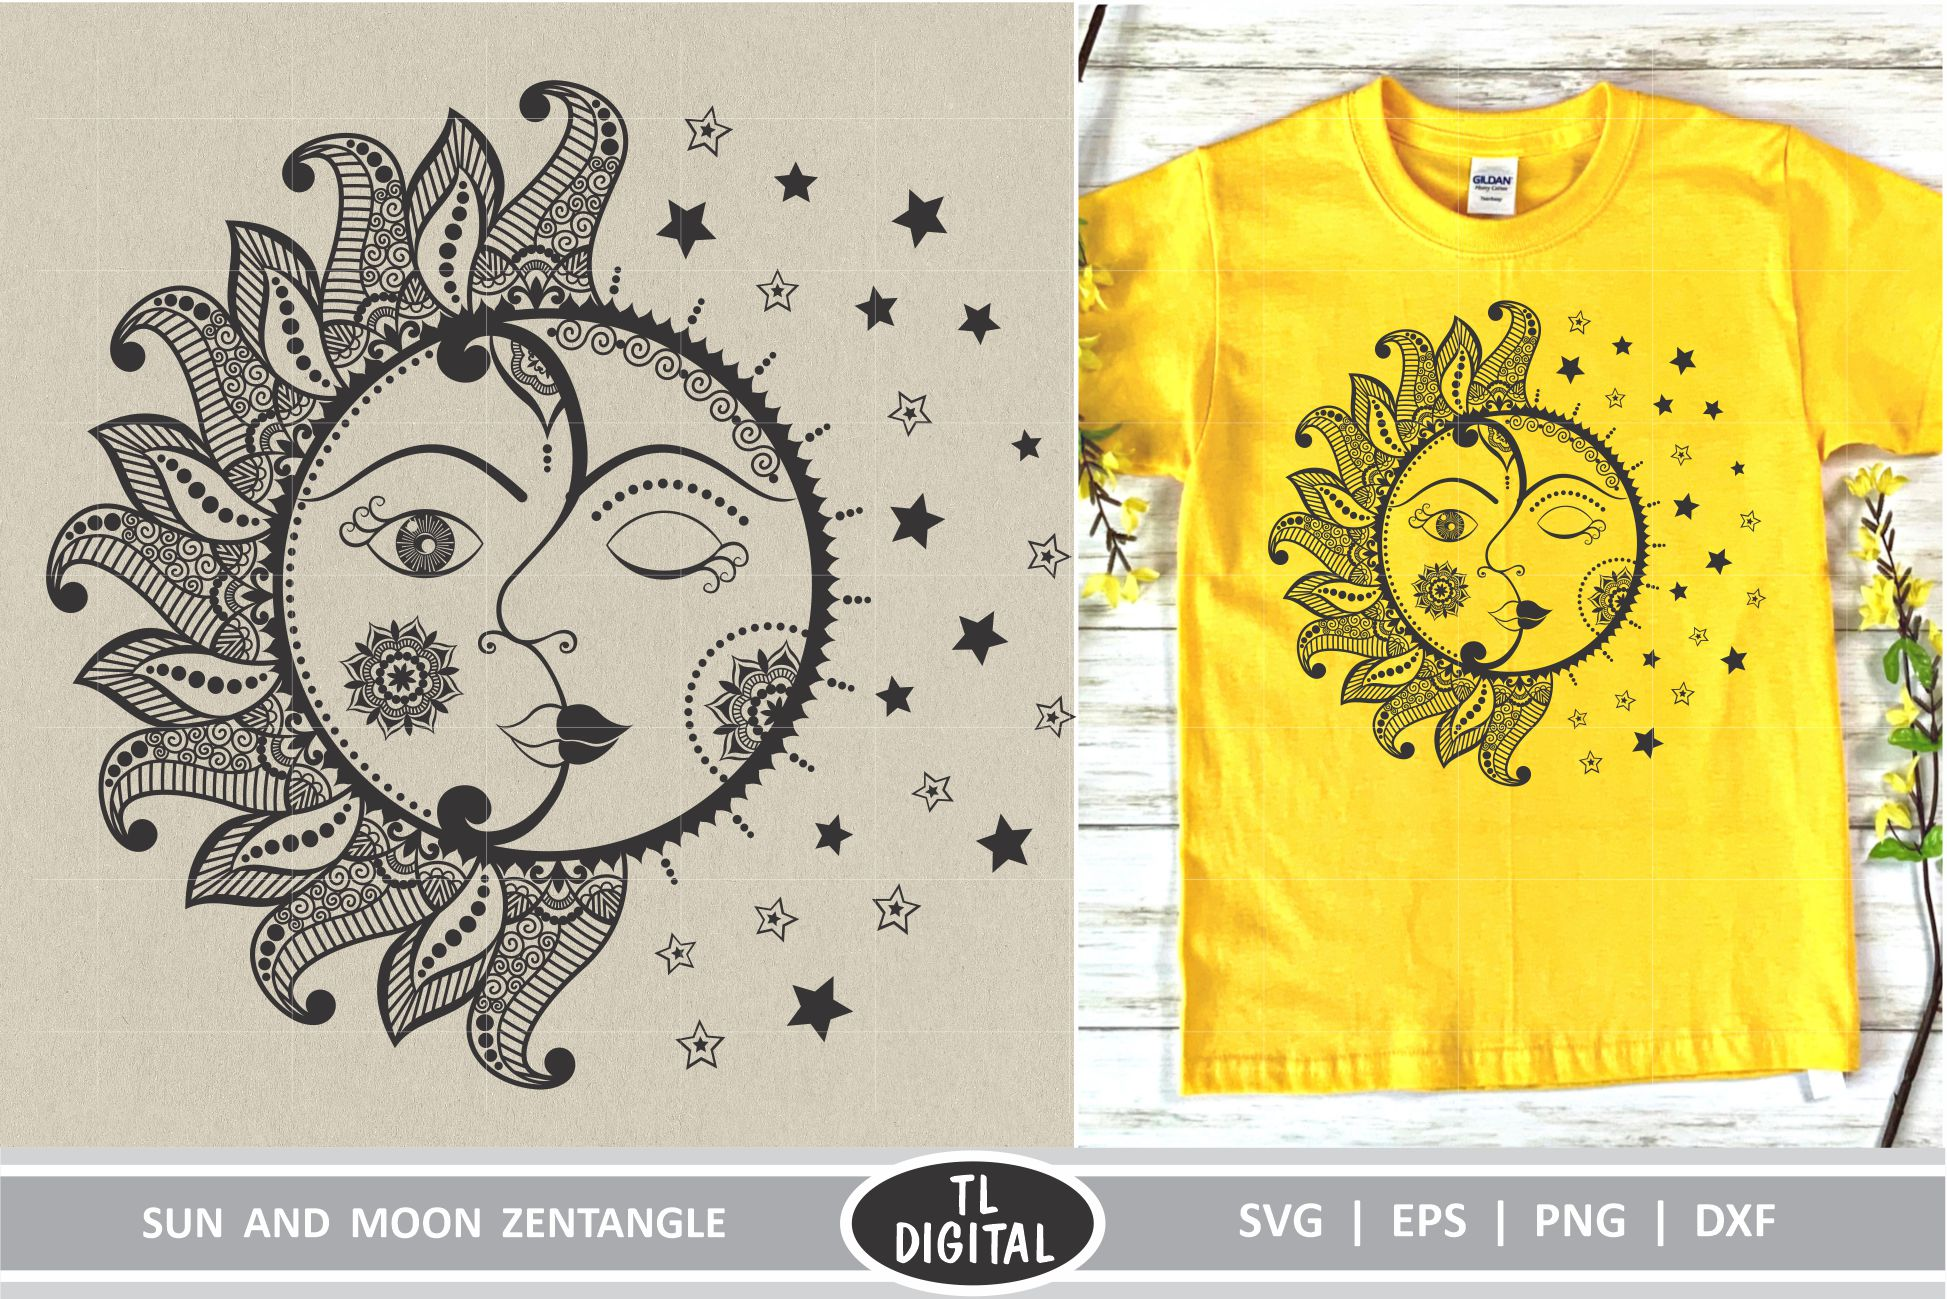 Download Free Sun And Moon Zentangle Design Mandala Graphic By Tl Digital for Cricut Explore, Silhouette and other cutting machines.